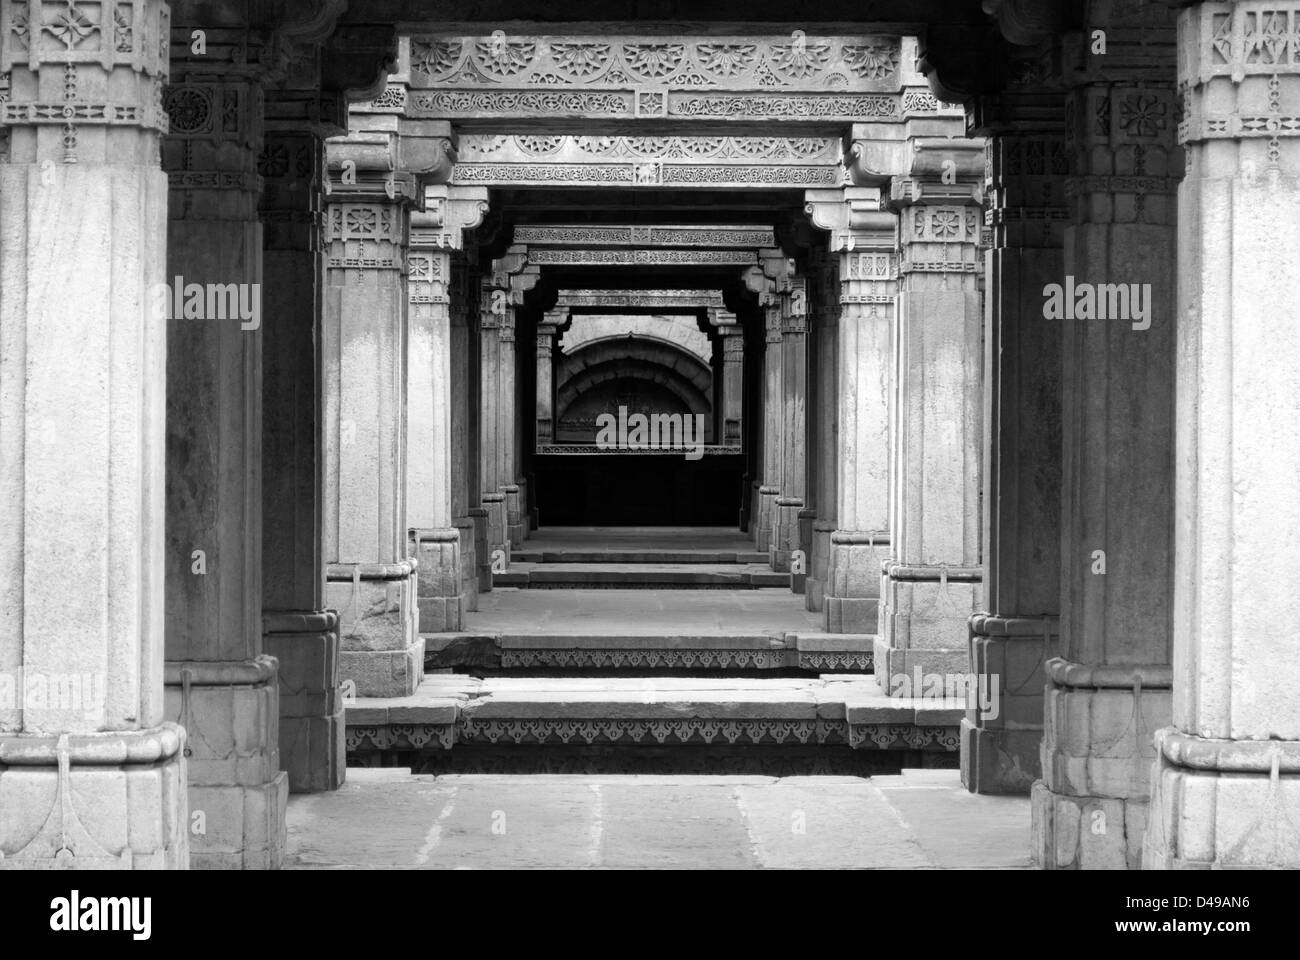 Pillars with carving at the famous Adalaj Vav Heritage stepwell monument in Ahmedabad, India - Stock Image